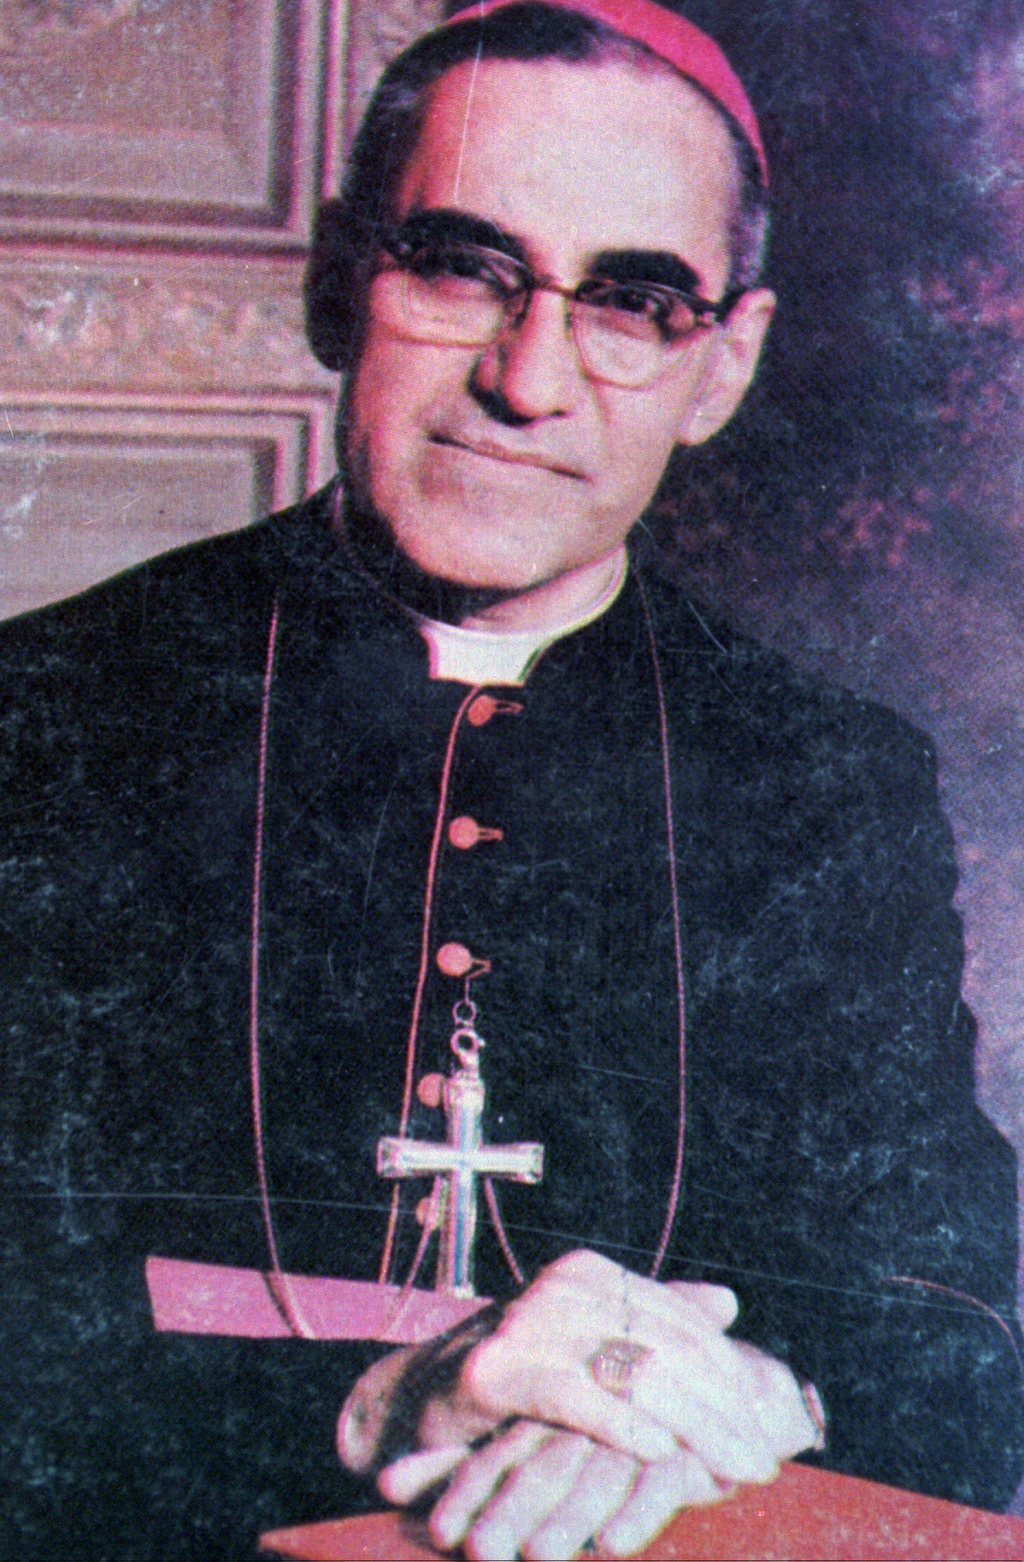 FILE - This undated file photo shows Archbishop Oscar Arnulfo Romero, who was gunned down while giving Mass in a San Salvador church on...